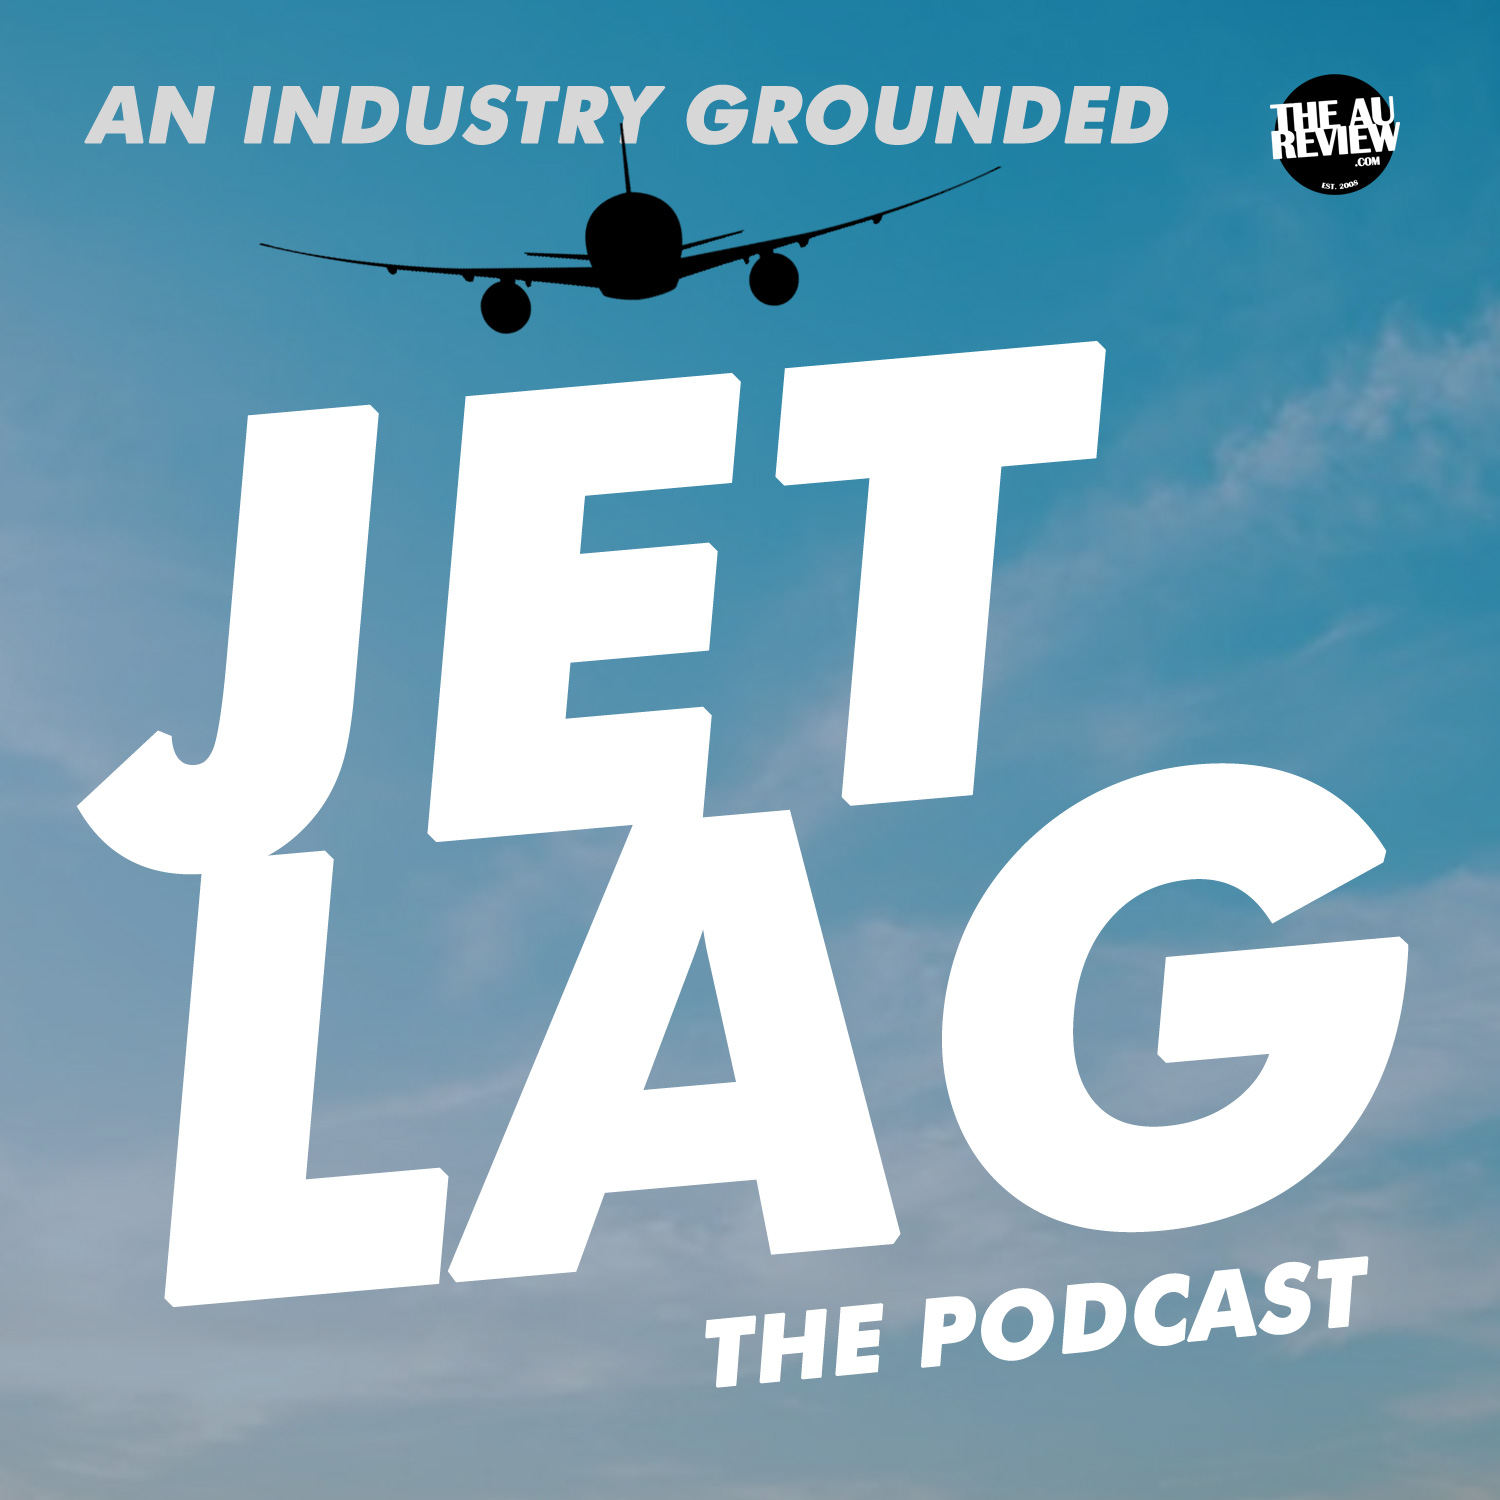 Jetlag: The Podcast - An Industry Grounded